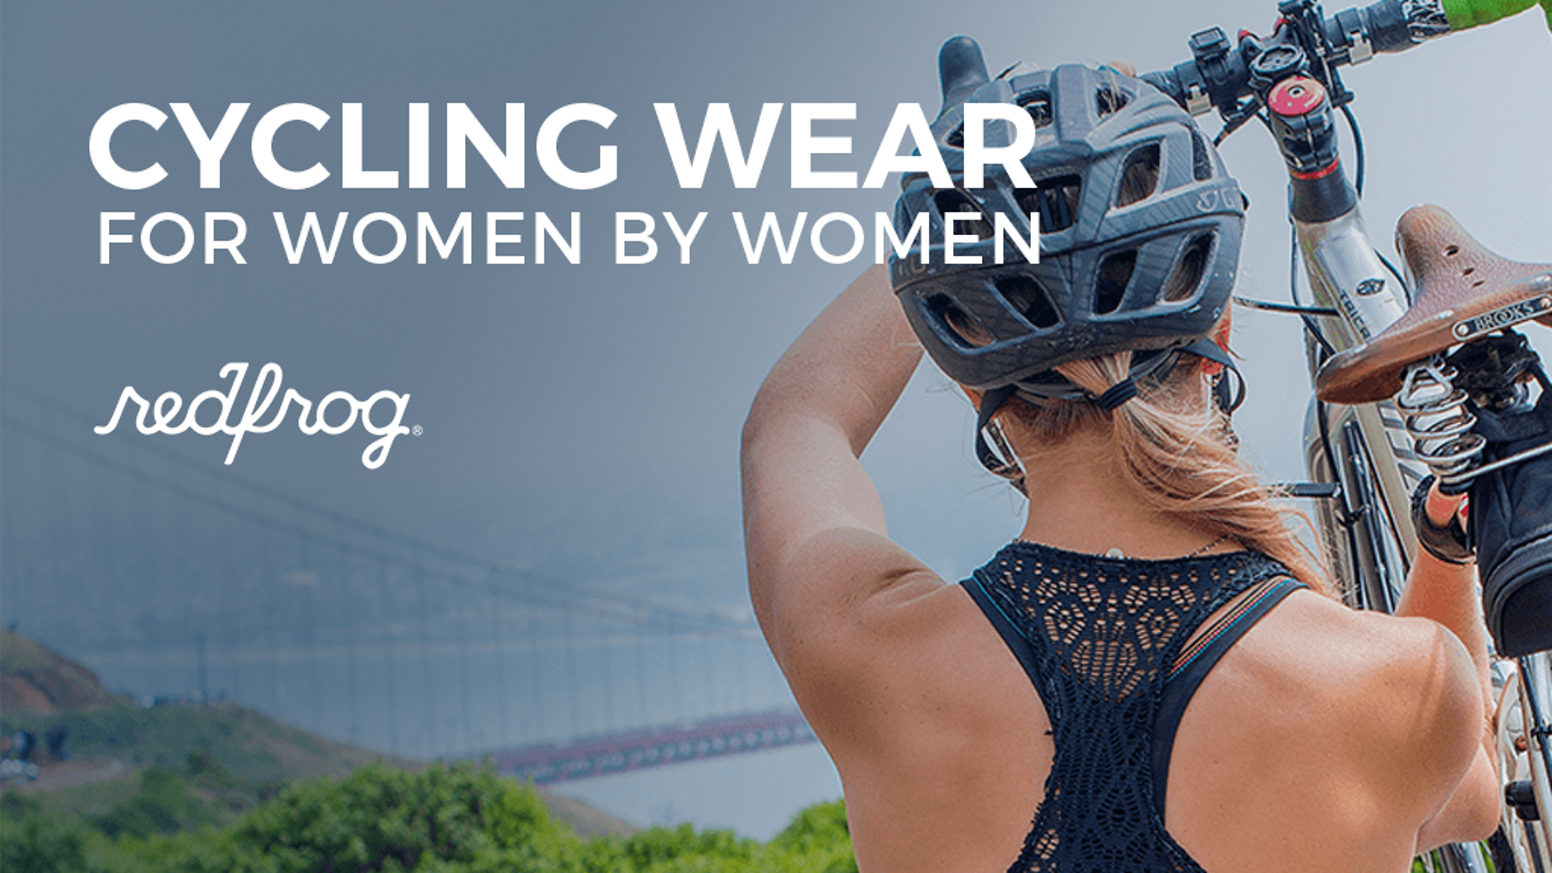 We create functional, stylish cycling apparel so you can feel confident and comfortable on and off your bicycle.